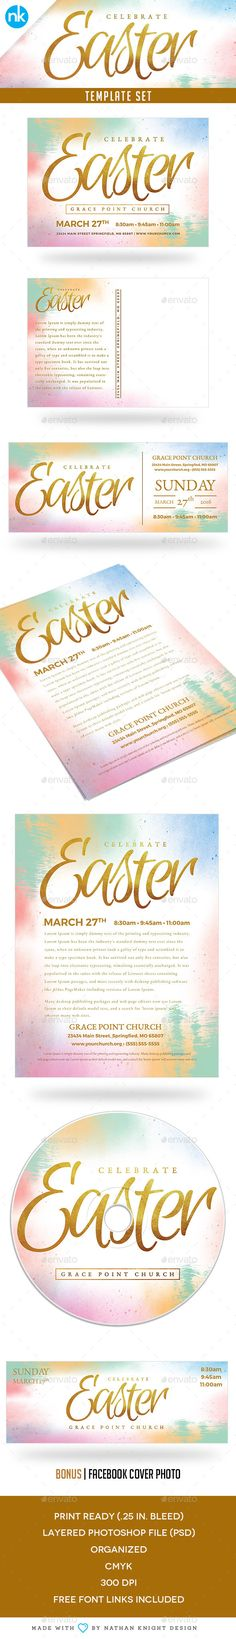 Easter Sunday Church Template Set - Celebrate,celebrate, church, cross, dvd, easter, flyer, friday, gold foil, good, Good Friday, jesus, lent, light, modern, postcard, postcard design, poster, psd, resurrection, salvation, sermon, sunday, template, temple, tomb